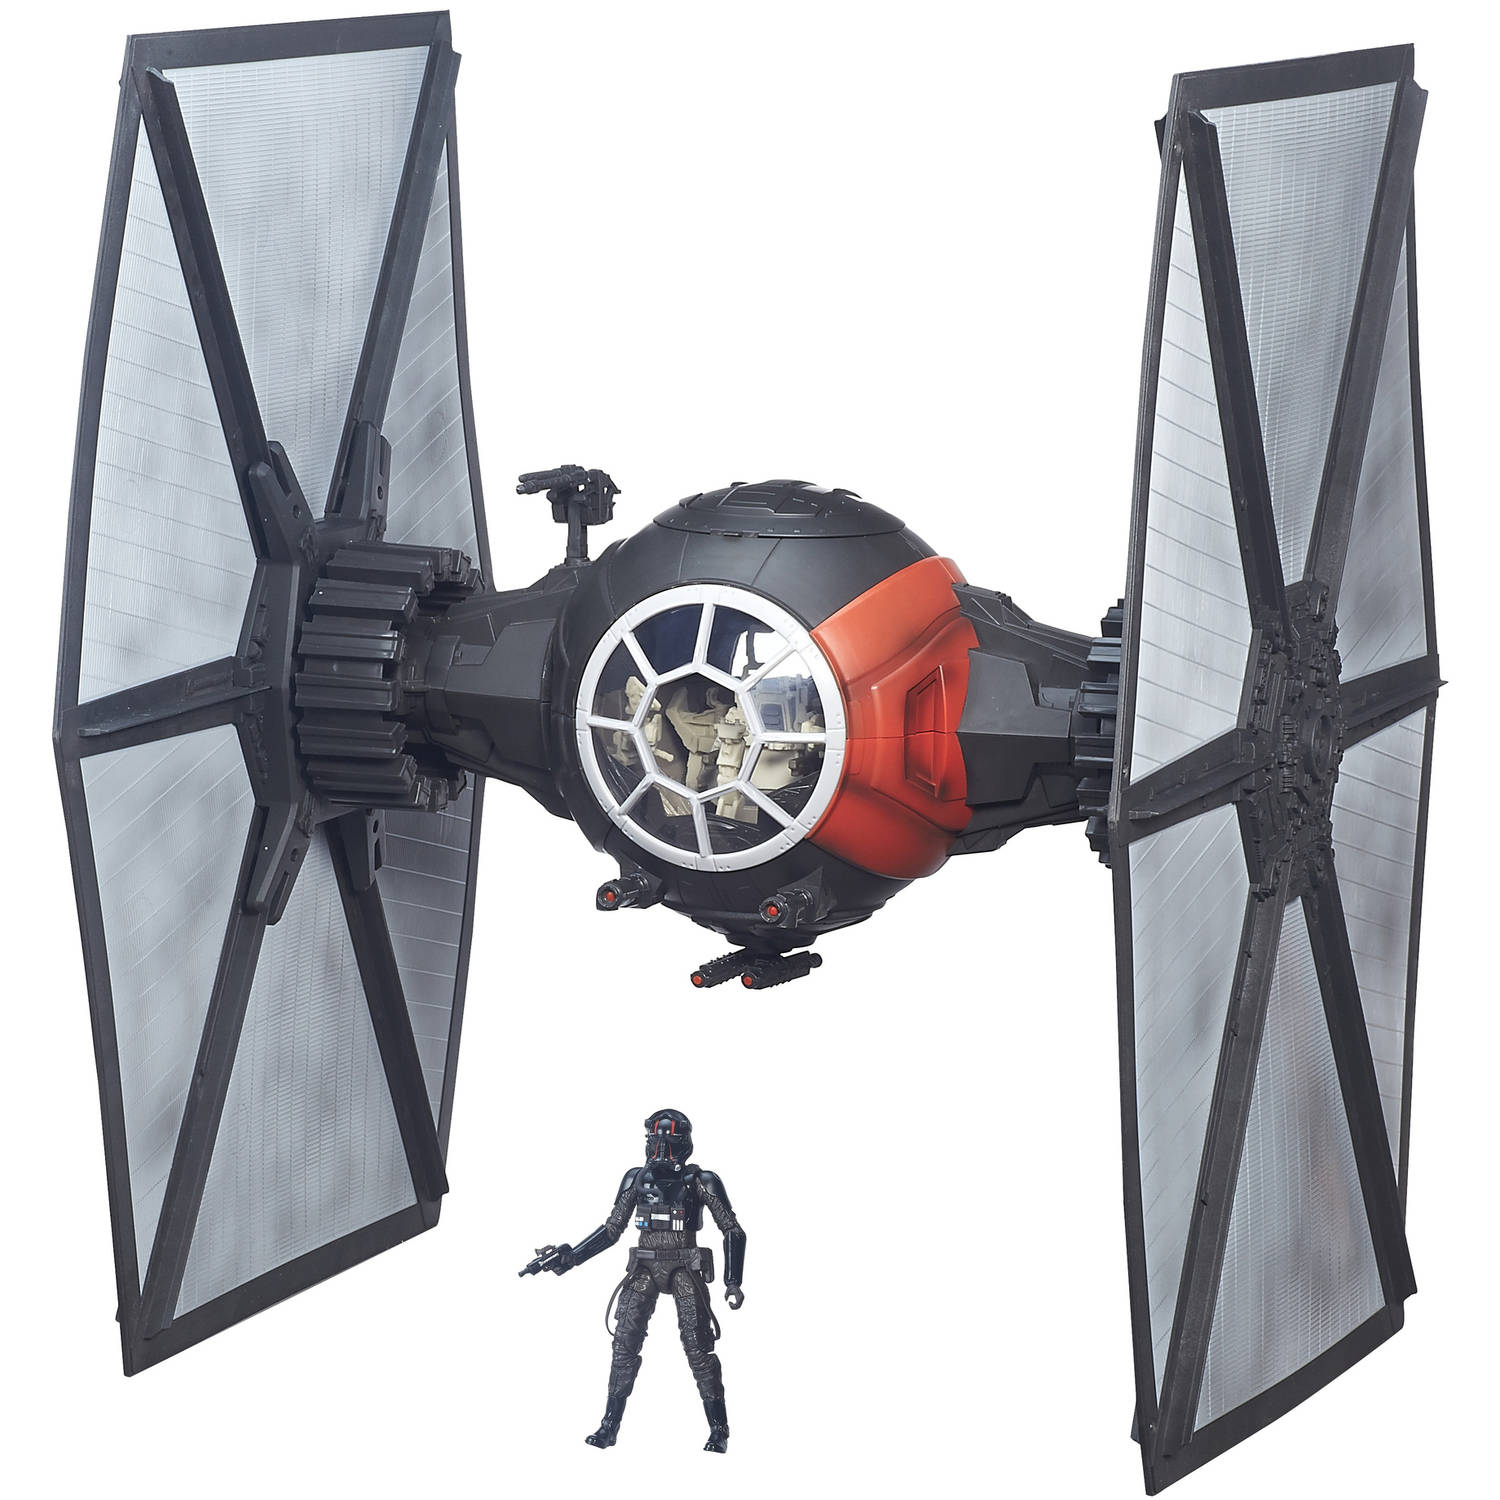 Star Wars The Black Series First Order Special Forces TIE Fighter by Hasbro